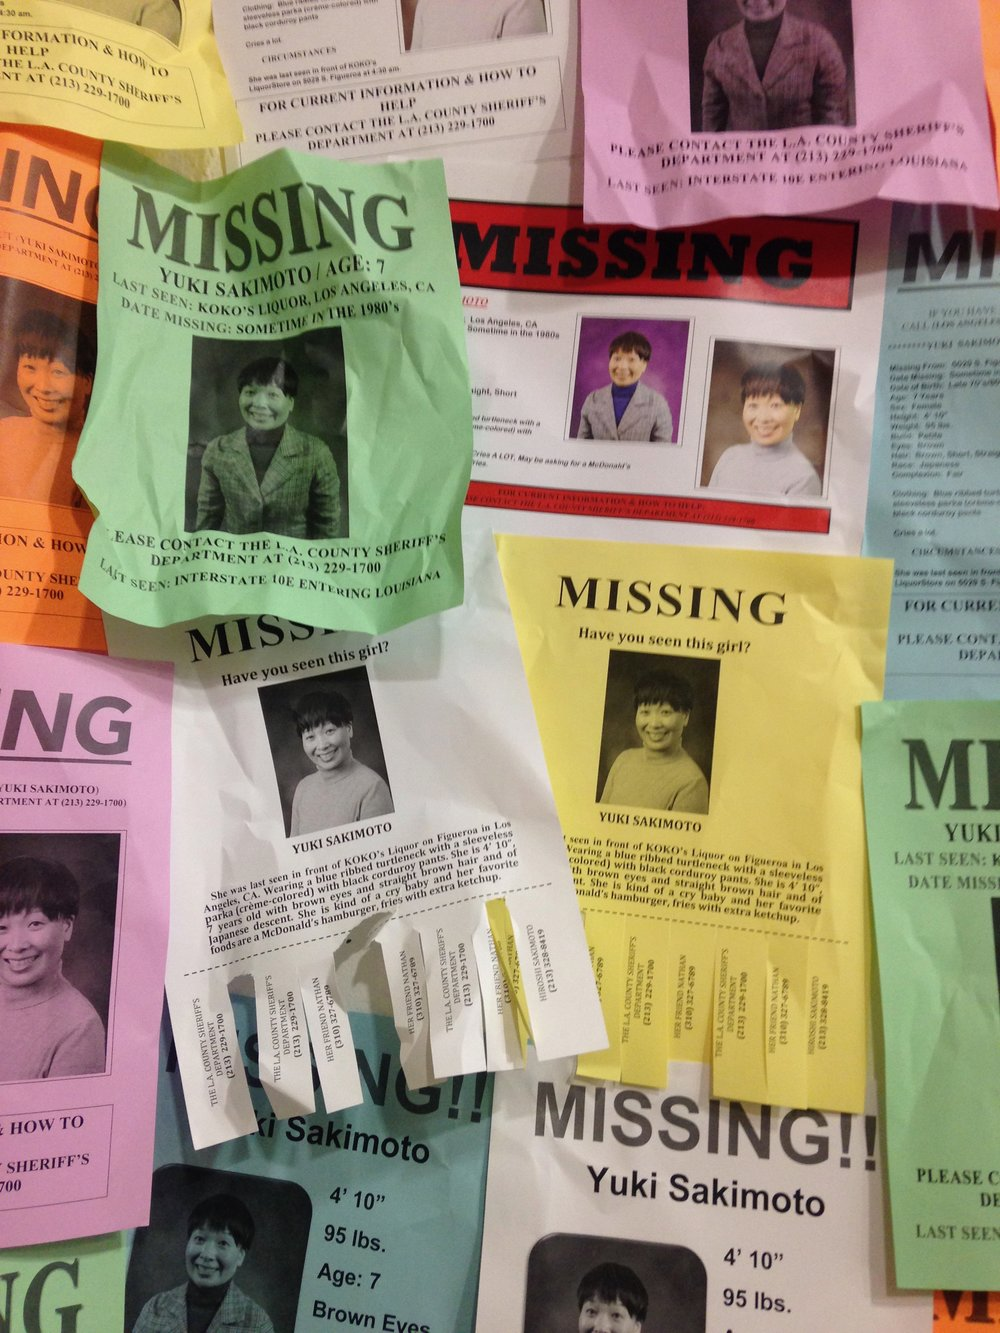 Yuki Missing Person Flyers, 2016